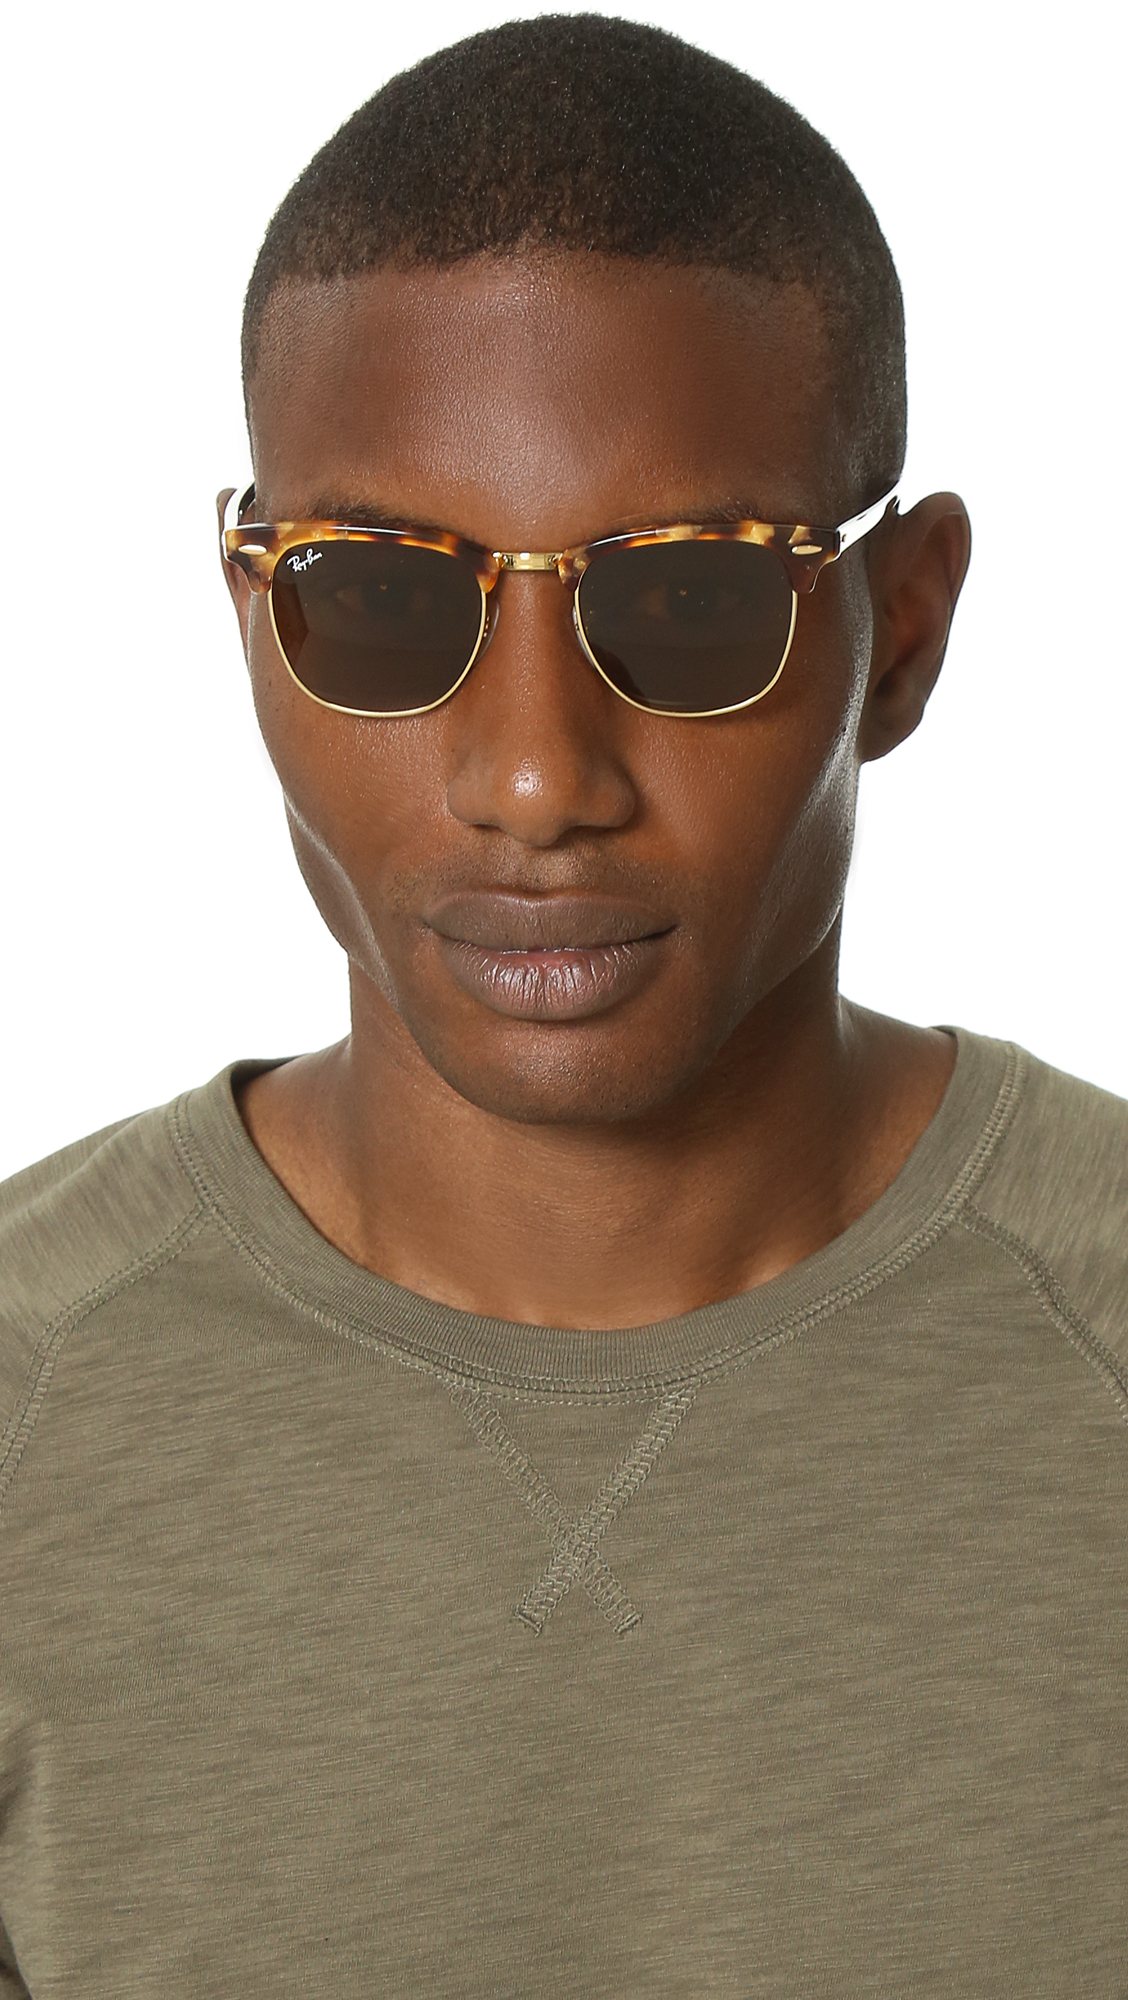 club master glasses  Ray-ban Spotted Clubmaster Sunglasses in Brown for Men